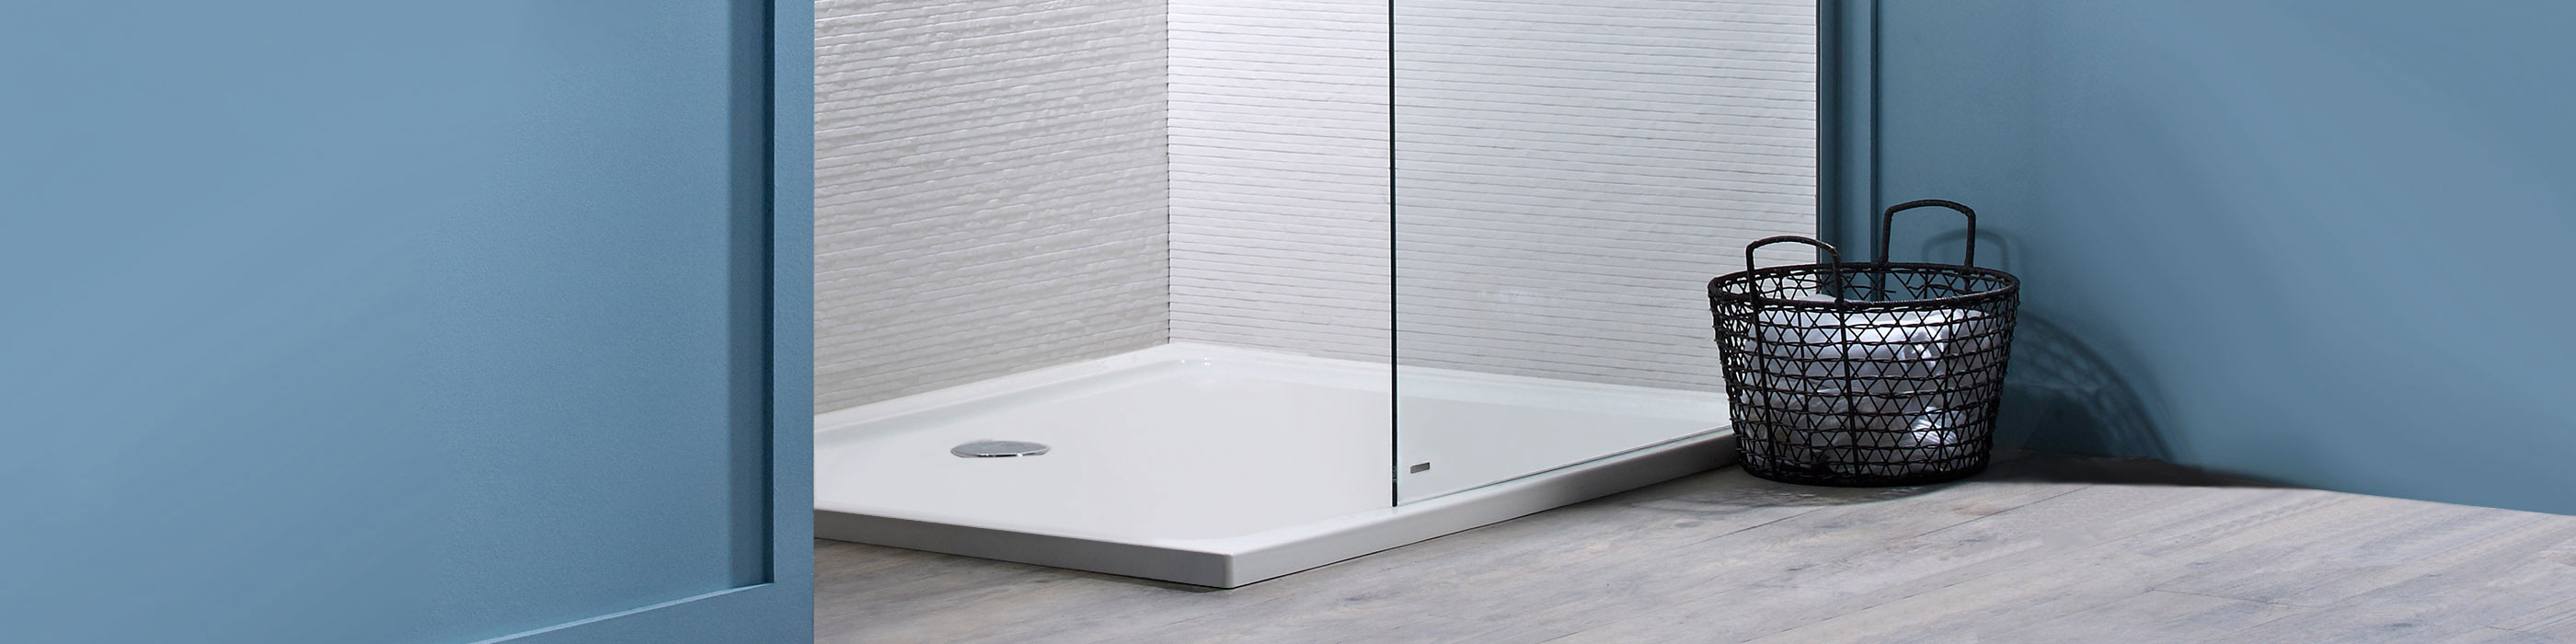 5 Best Shower Pans - (Reviews & Complete Buying Guide 2018)